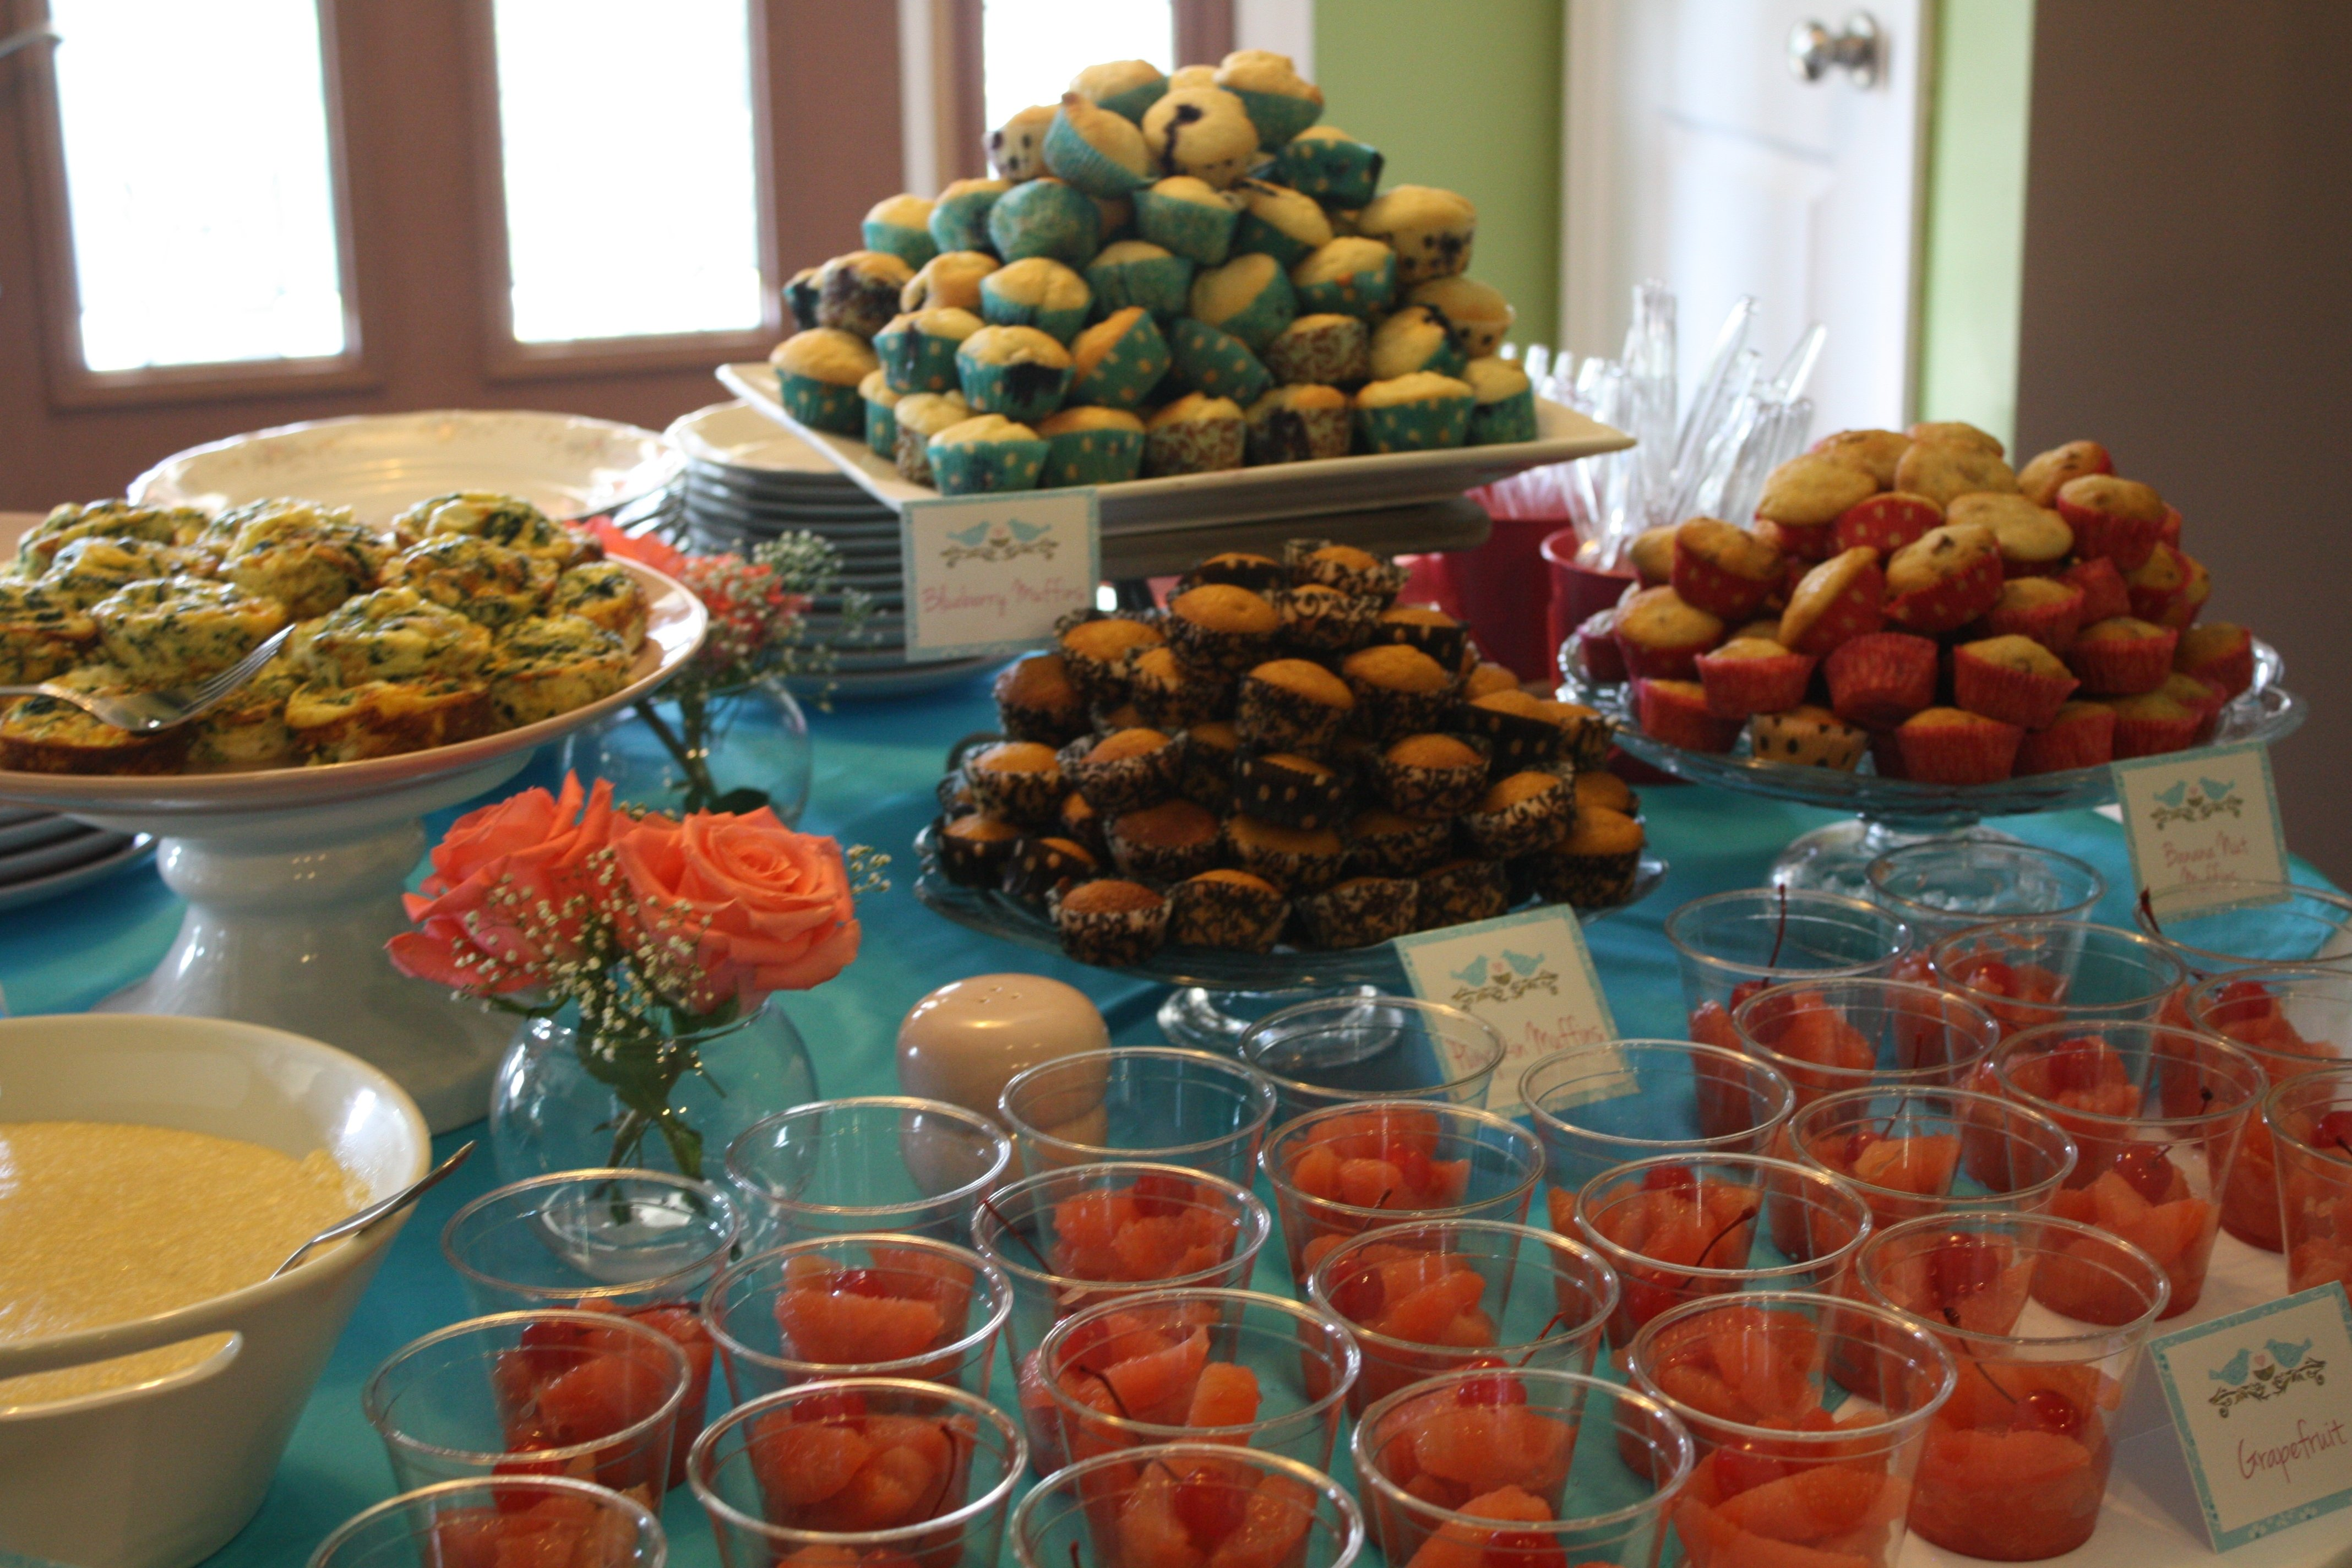 10 Gorgeous Baby Shower Food And Drink Ideas photo baby shower ideas for image 1 2021